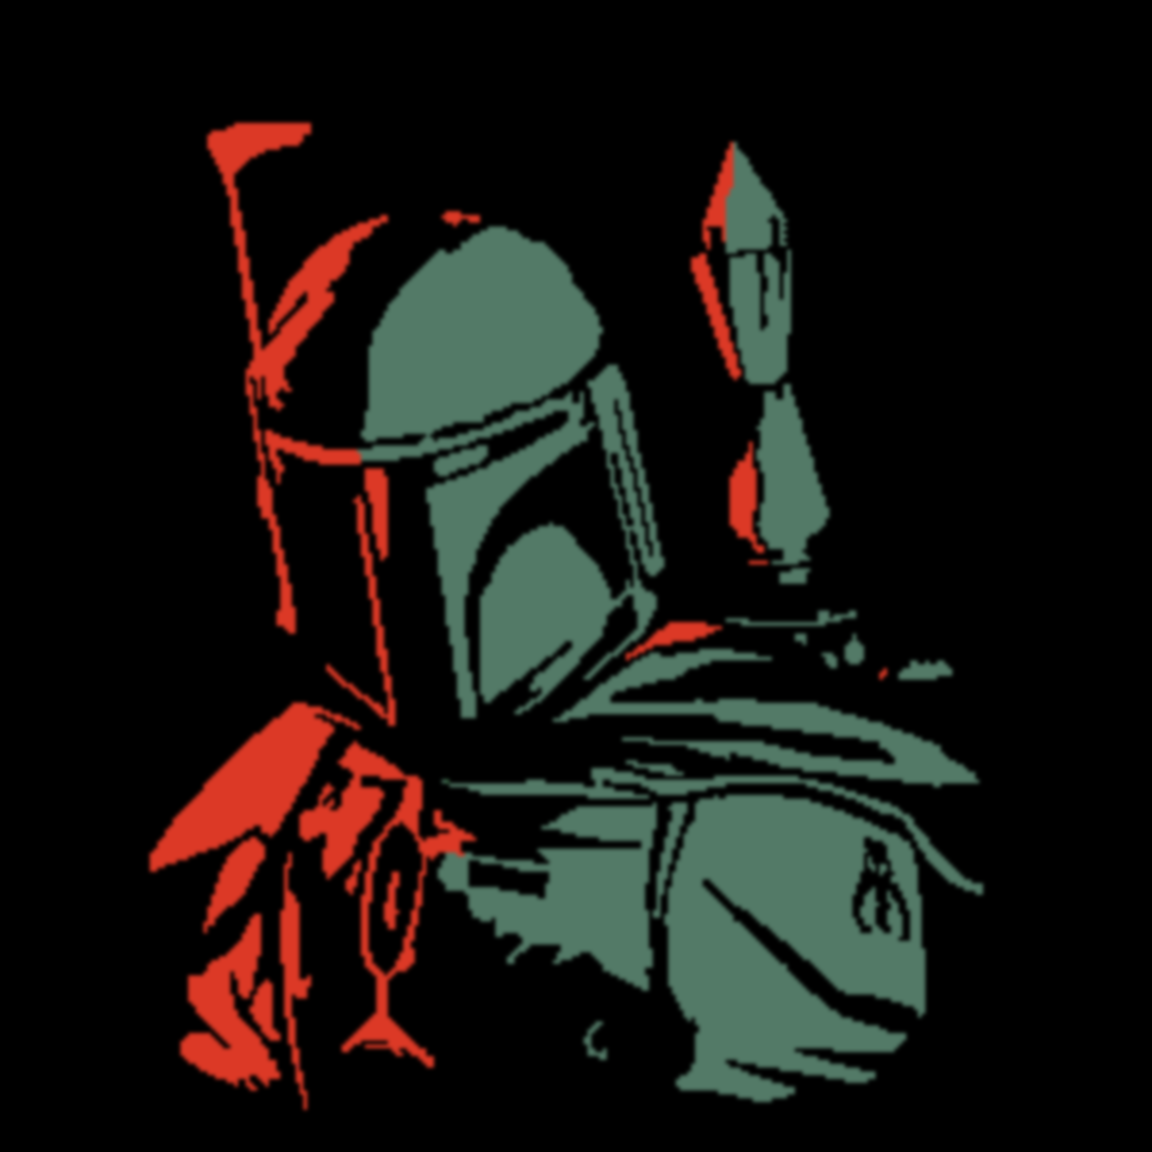 Boba fett symbol wallpapers icons fonts pictures art pinterest boba fett symbol wallpapers icons fonts pictures buycottarizona Image collections